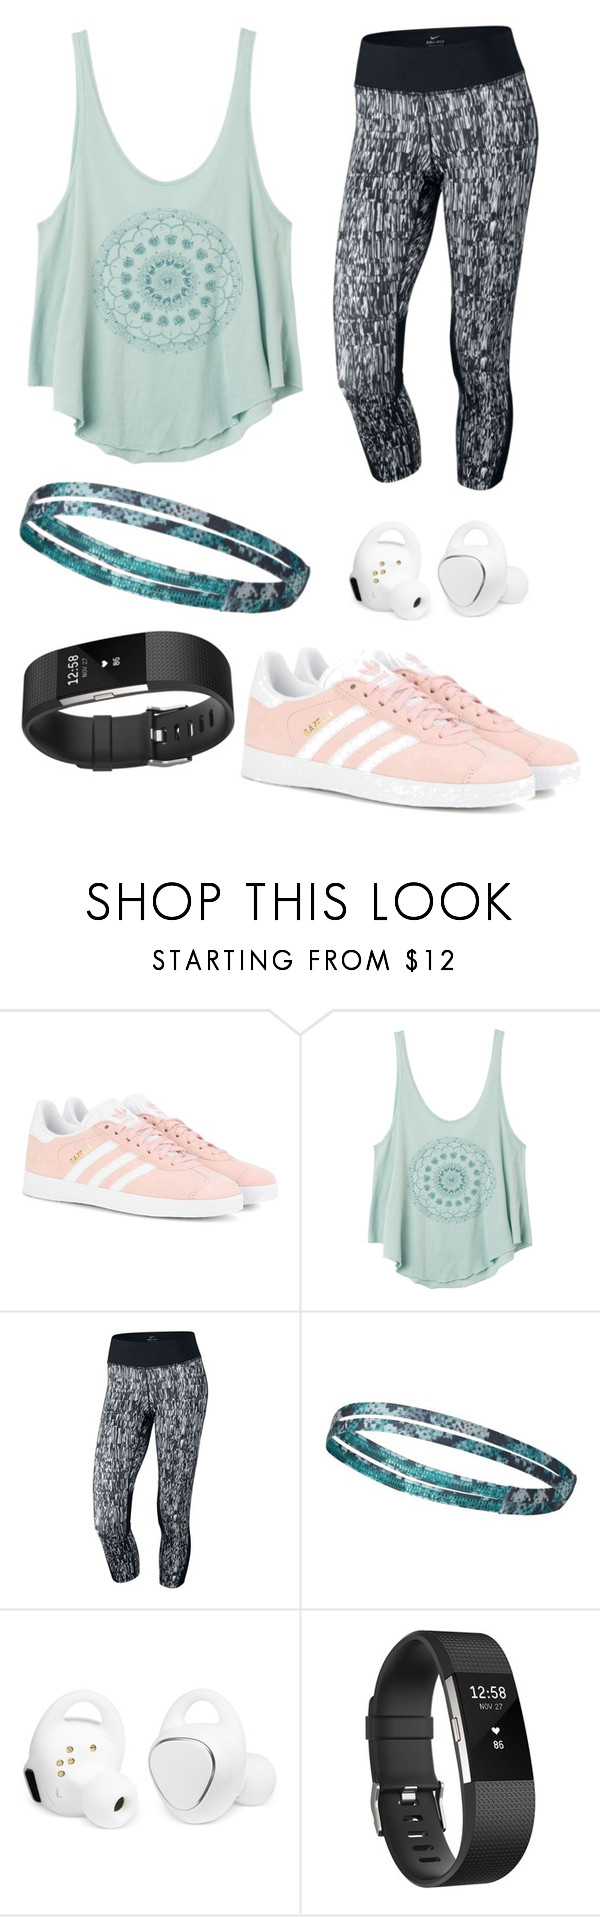 """""""Going for a run"""" by kupcakecat ❤ liked on Polyvore featuring adidas Originals, RVCA, NIKE, Columbia, Samsung and Fitbit"""